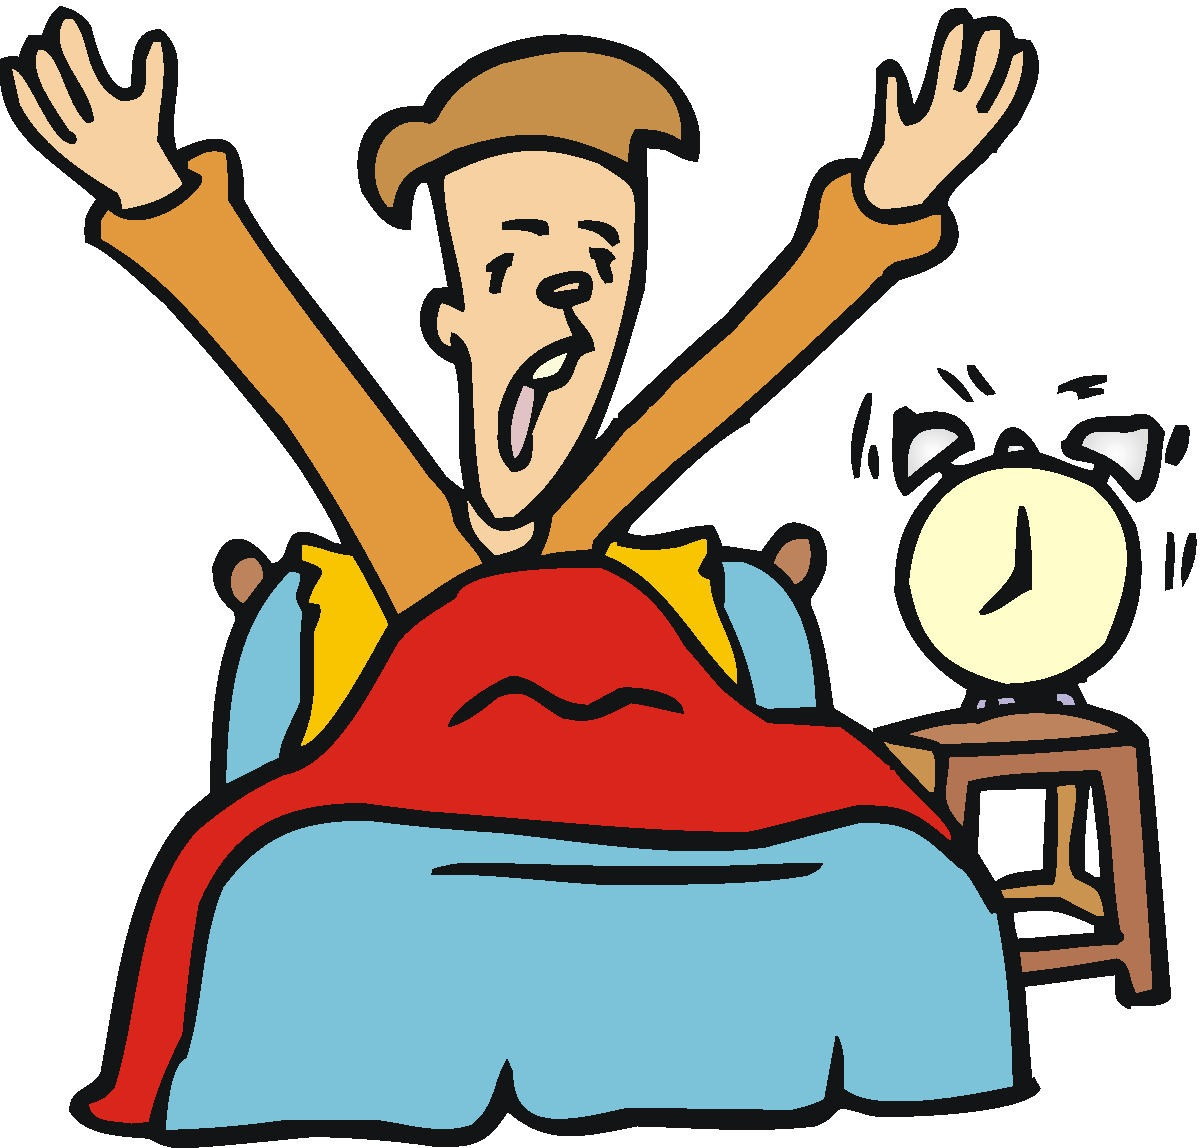 Waking clipart. Up in bed